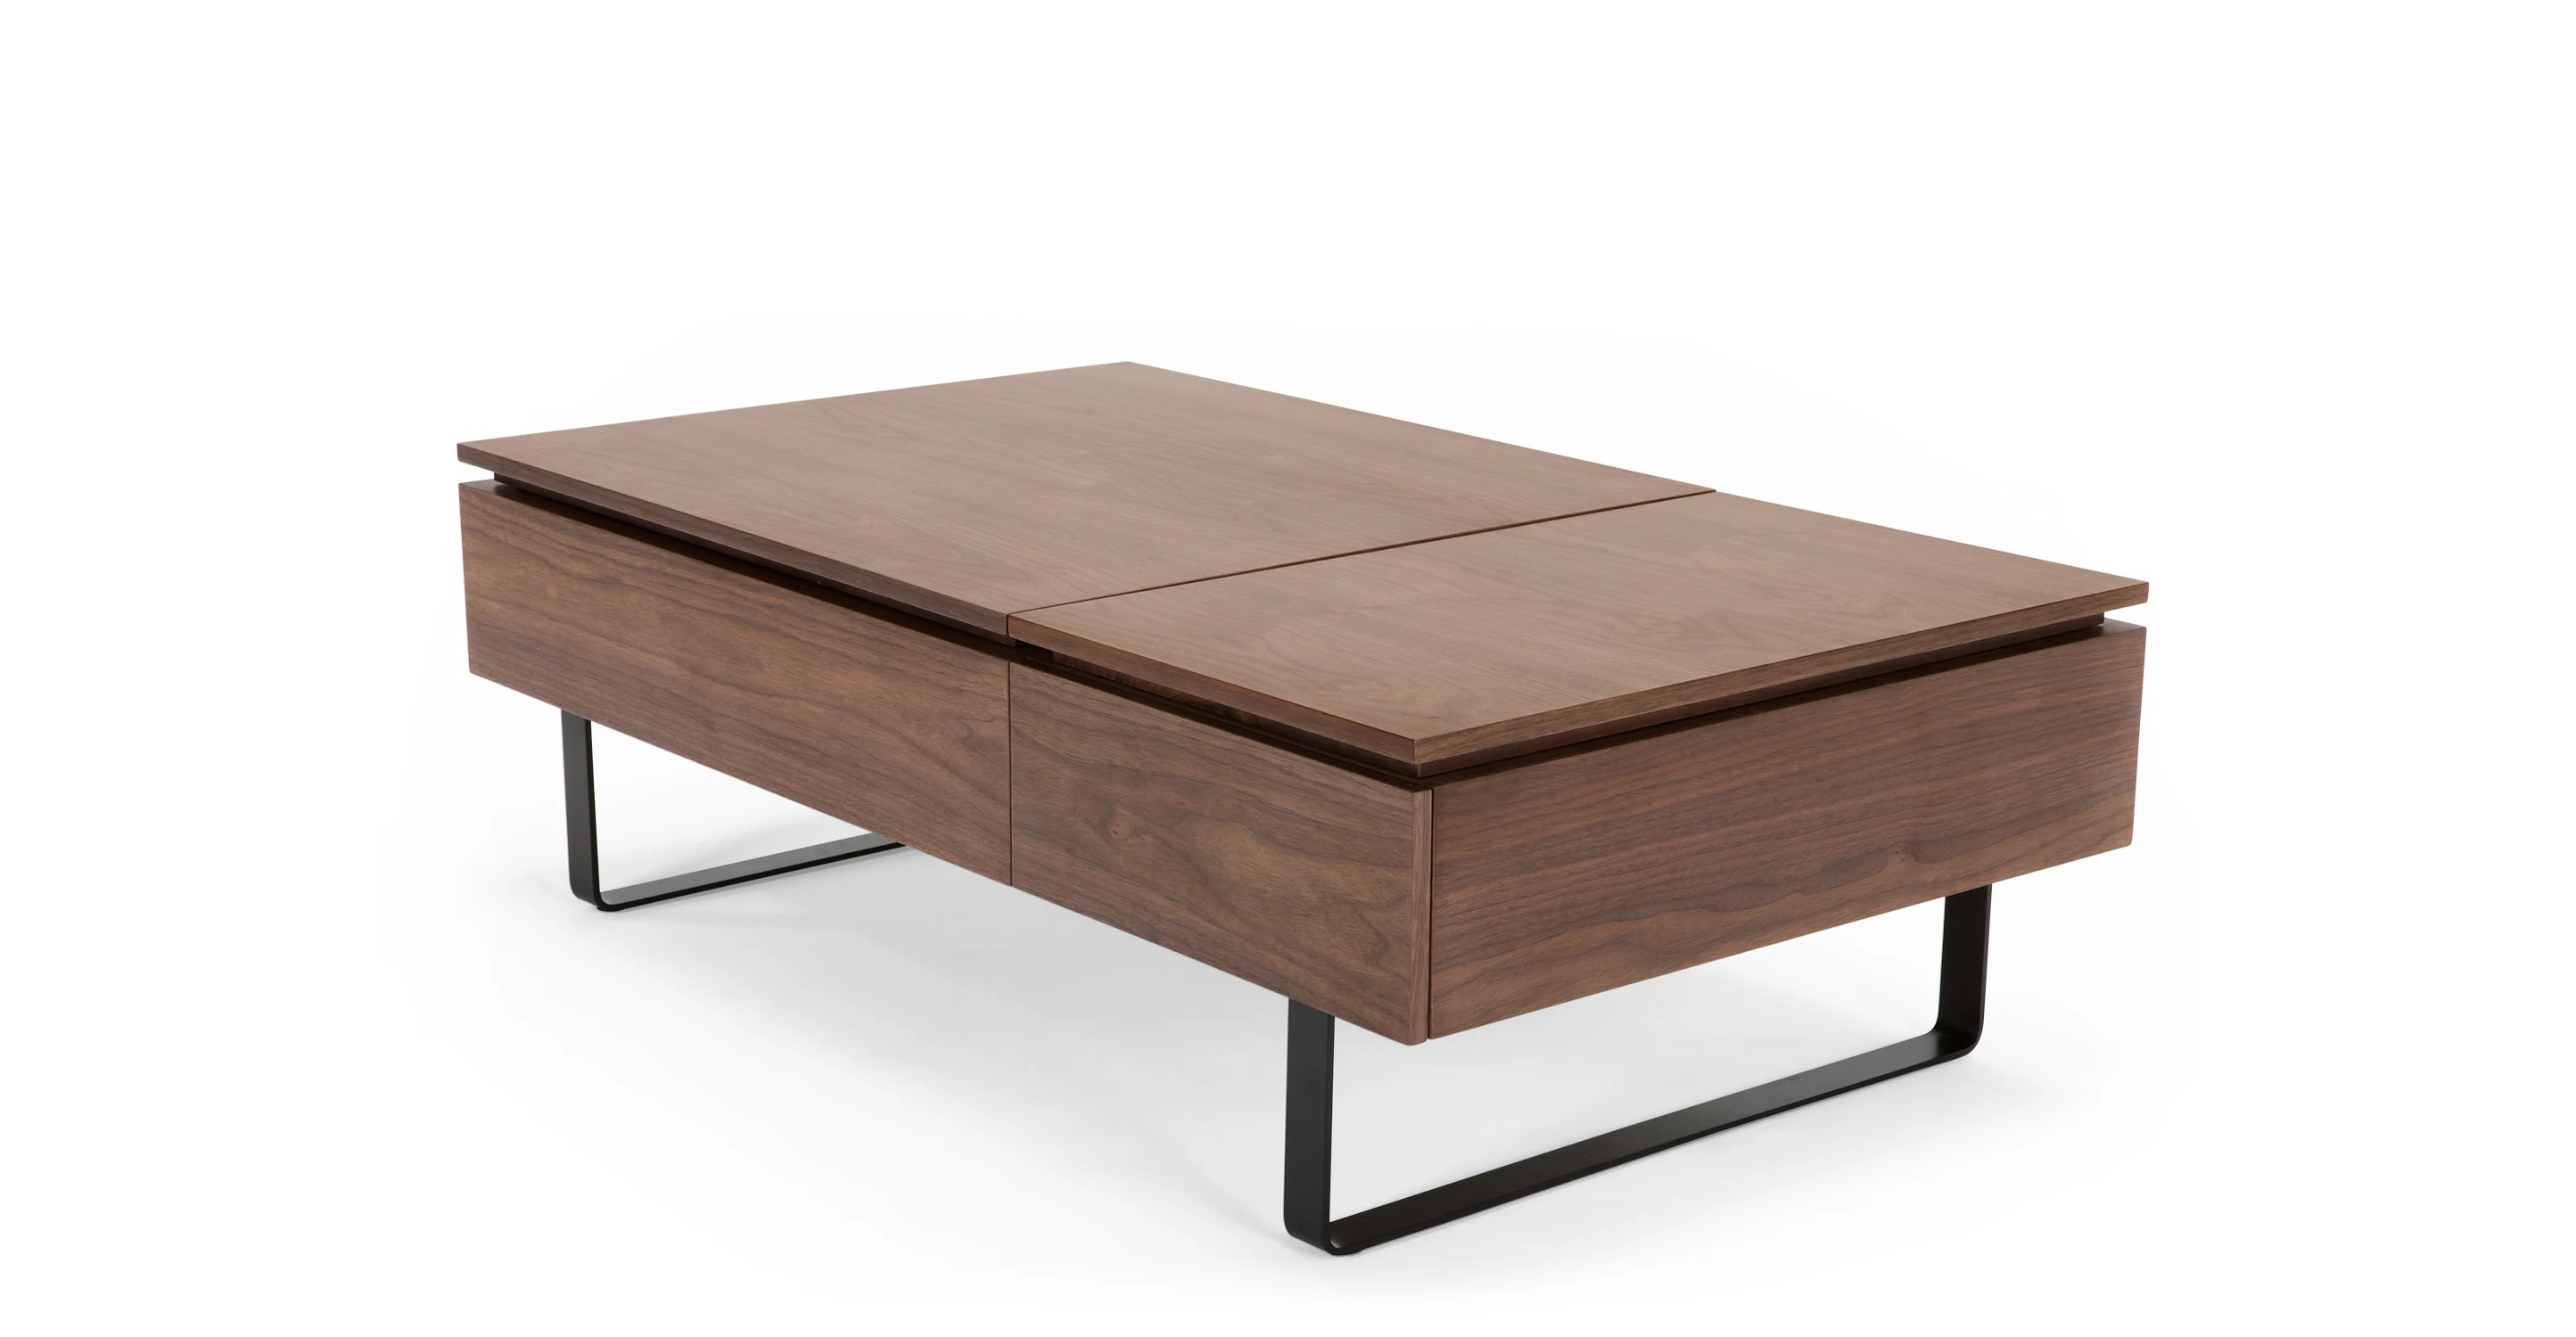 Couchtisch Flippa Flippa Functional Coffee Table With Storage, Walnut | Made.com